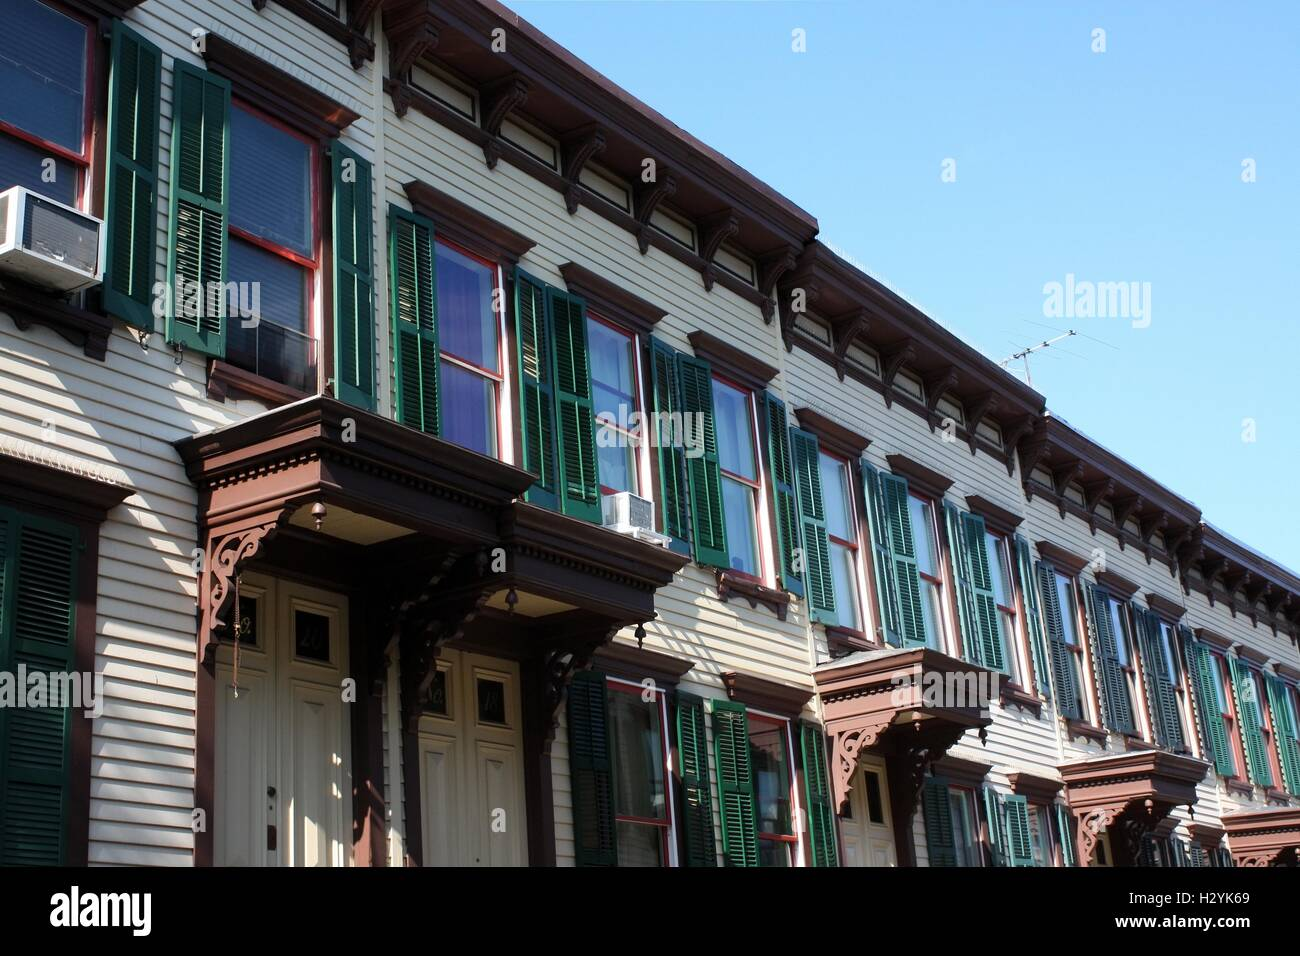 Sylvan Terrace wooden frame houses were built in 1882-1883 and are part of Jumel Terrace Historic District in Washington - Stock Image